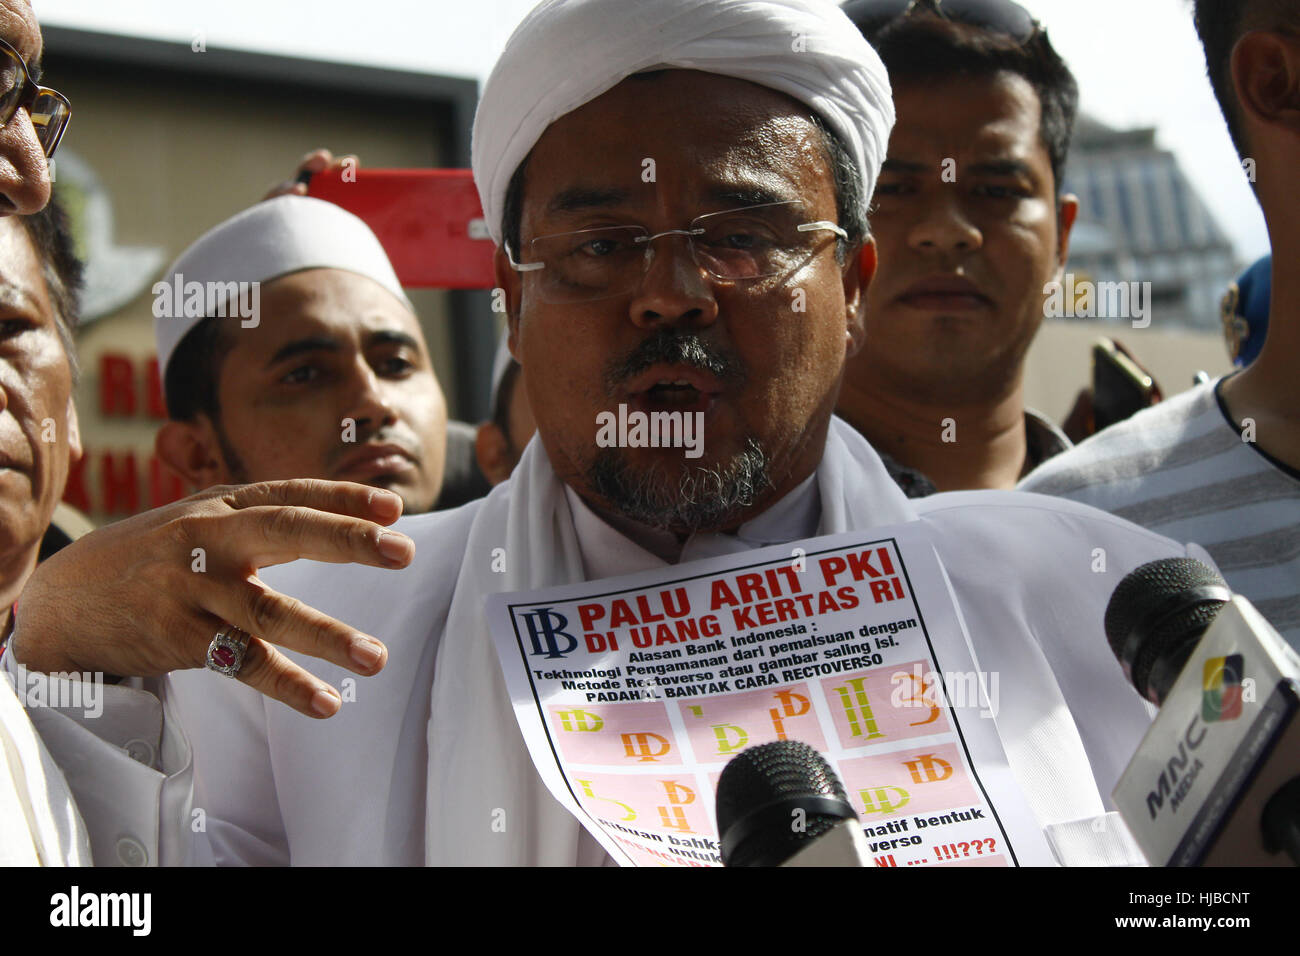 Habib Rizieq High Resolution Stock Photography And Images Alamy